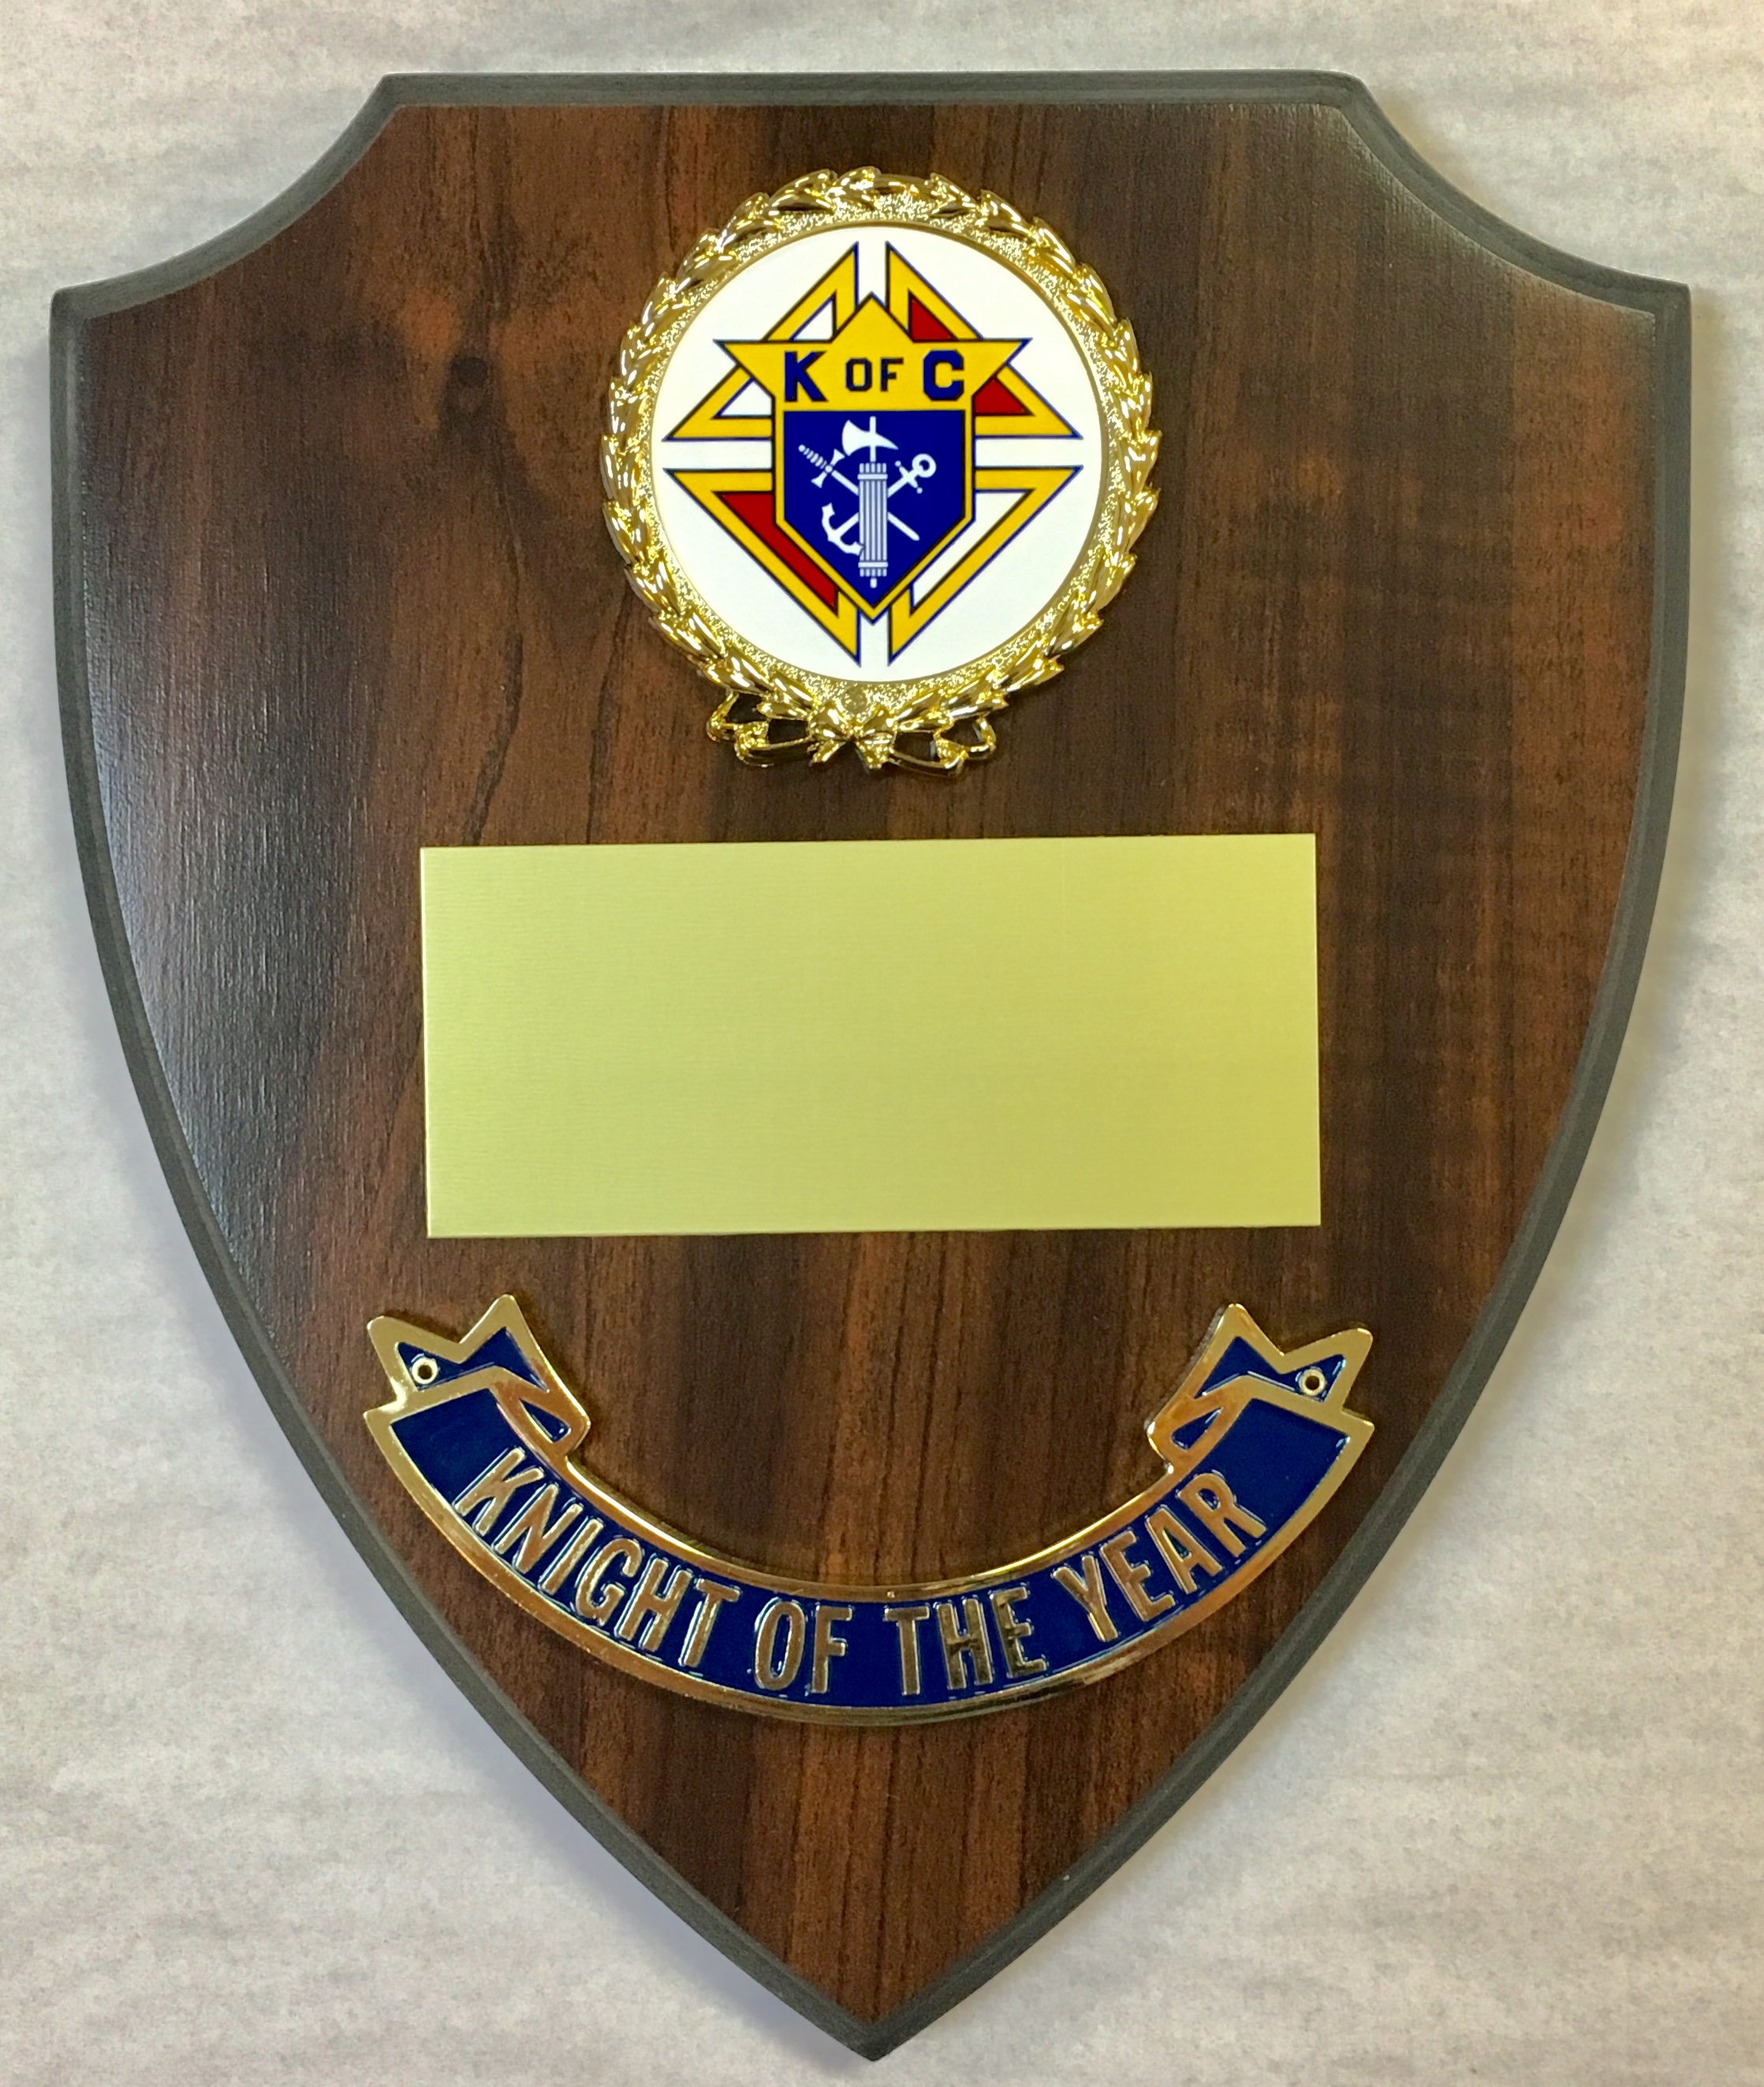 P-I - Knight of the Year Shield Plaque